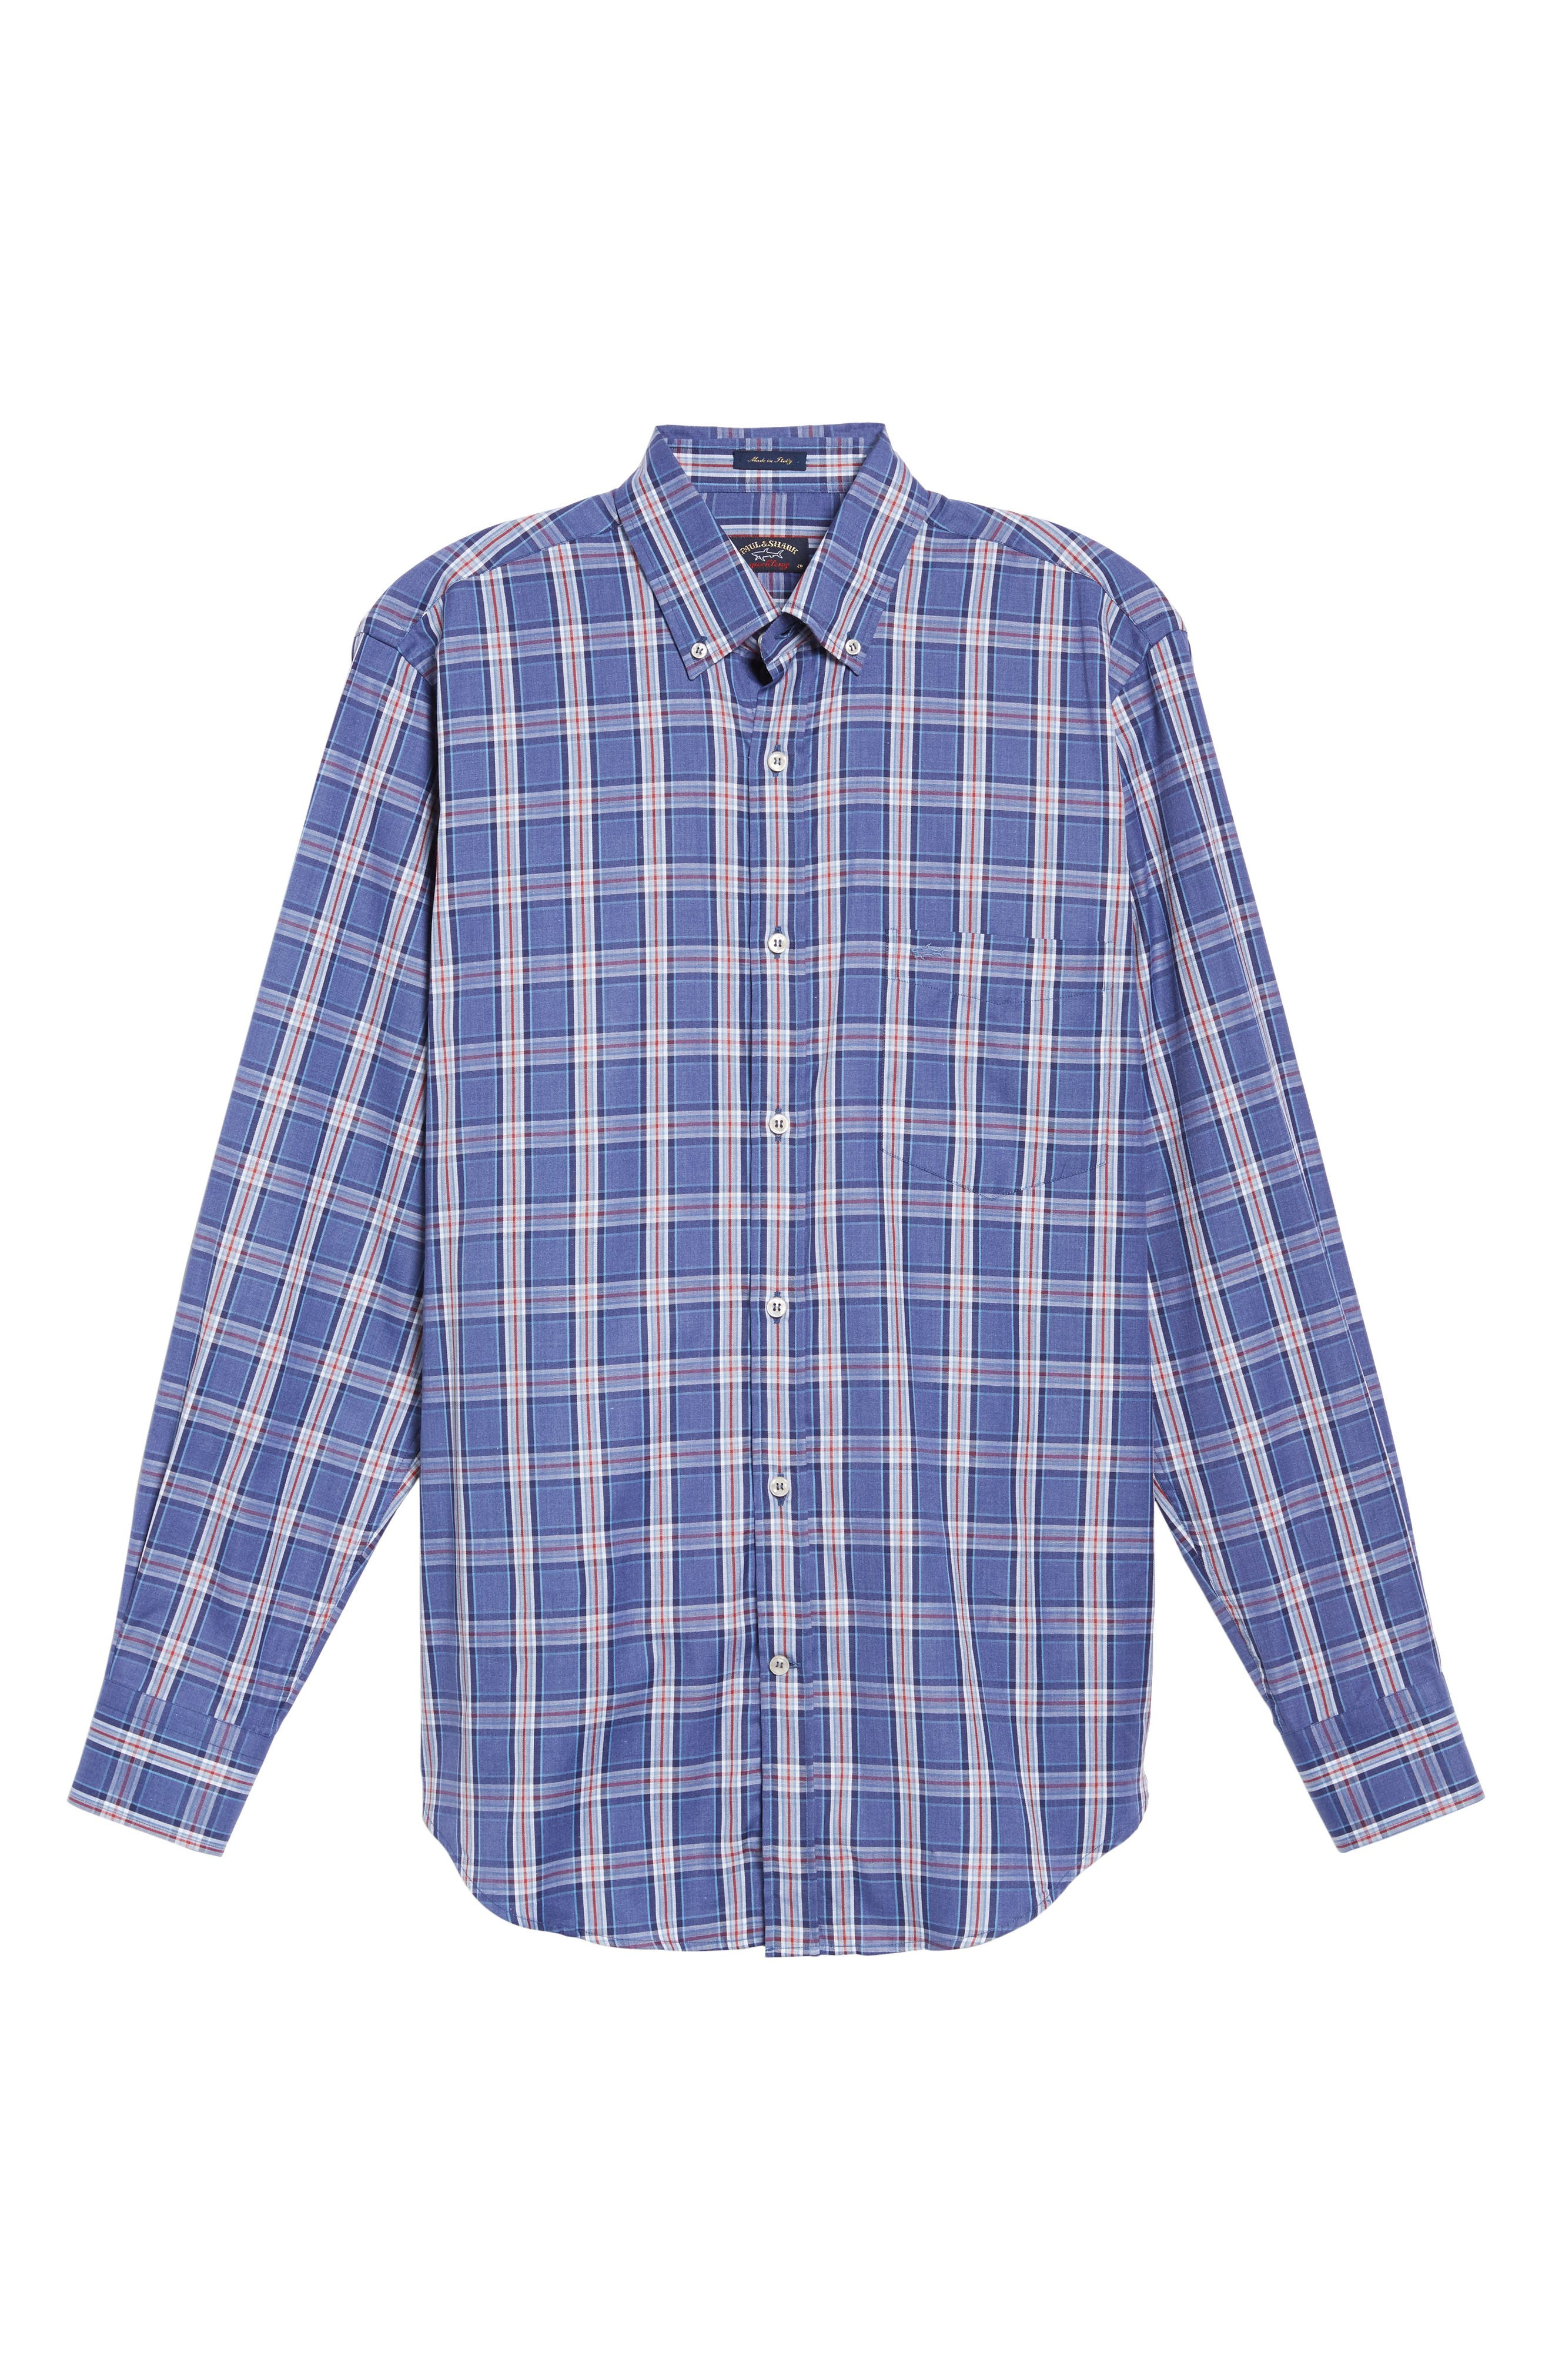 Paul&Shark Plaid Sport Shirt,                             Alternate thumbnail 6, color,                             400